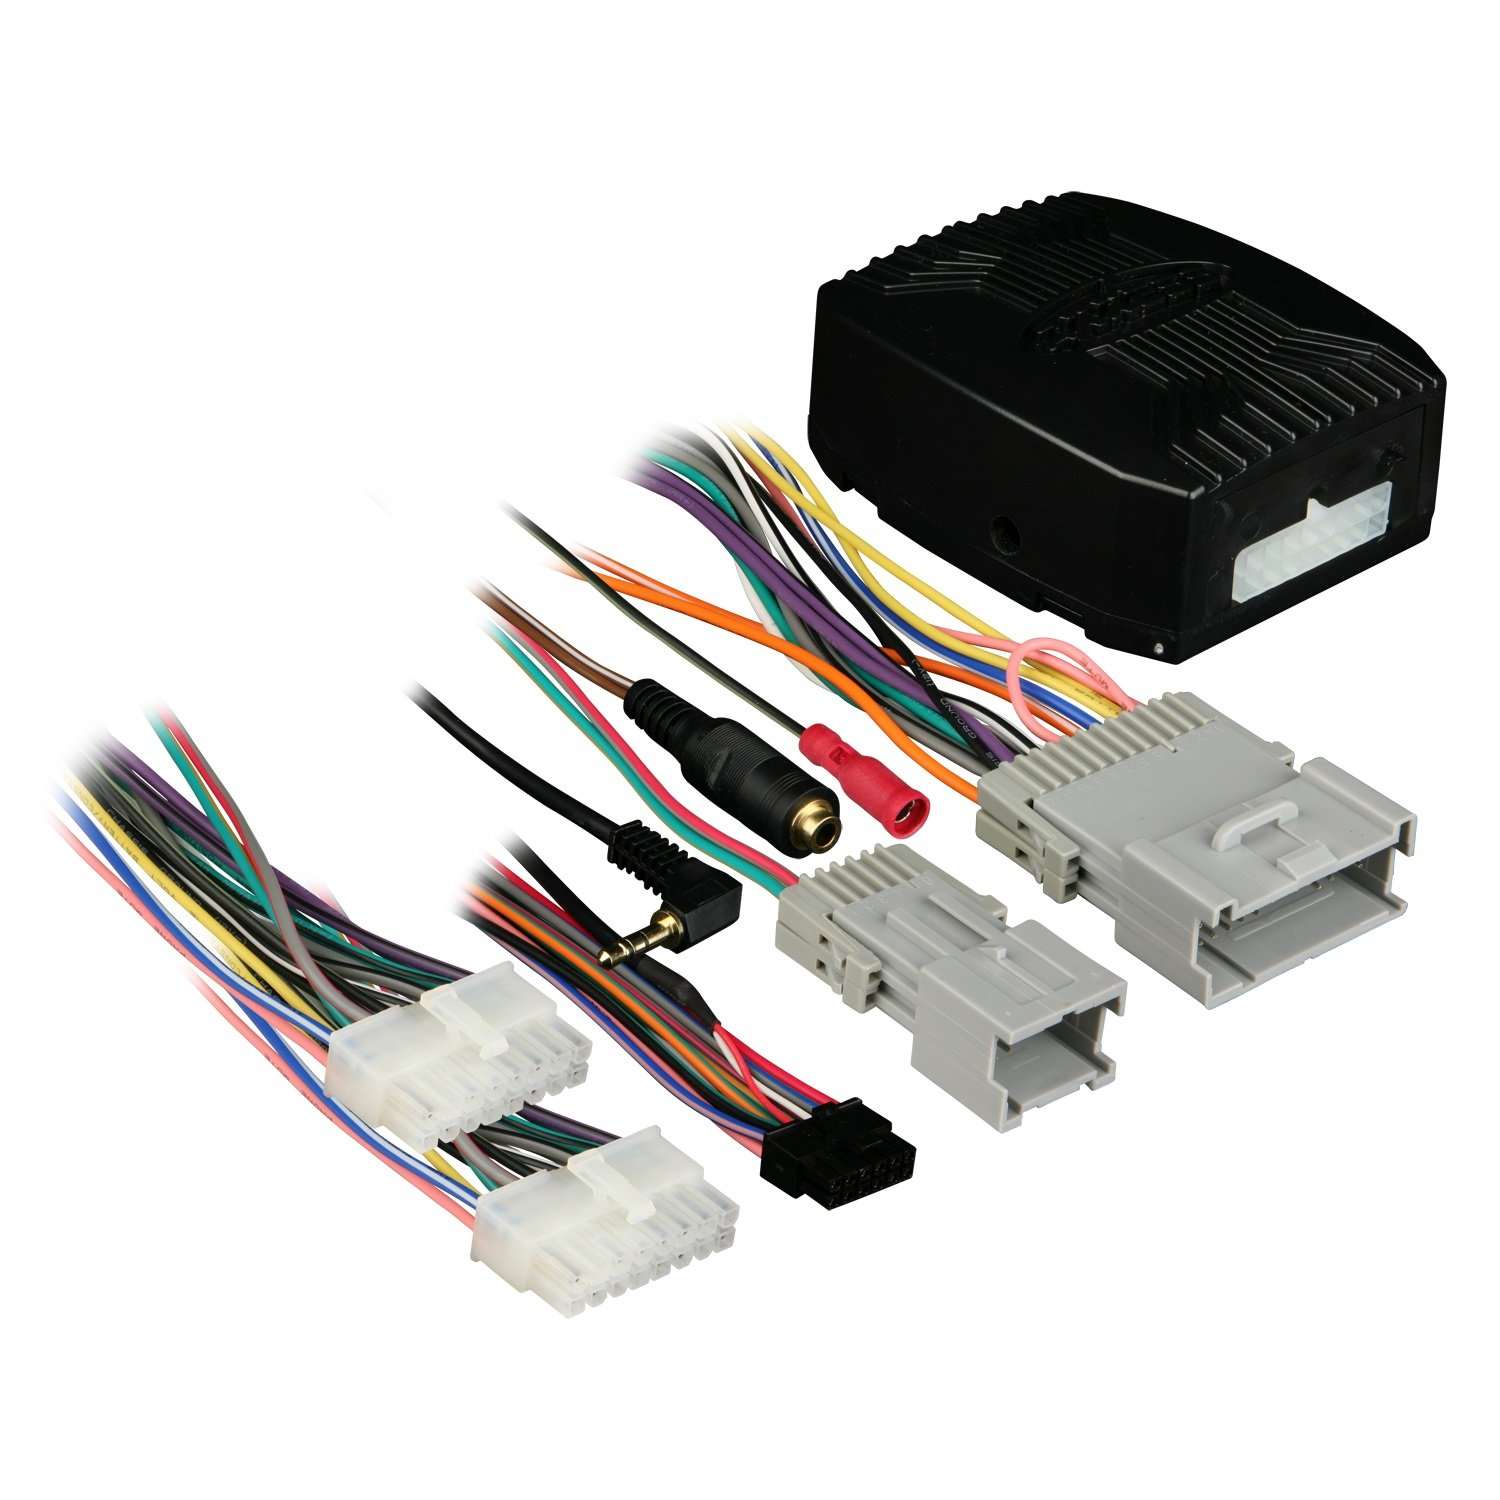 71wZV8JM8%2BL._SL1500_ amazon com axxess gmos 01 02 up onstar harness adapter with chime gmrc 04 wiring harness at readyjetset.co